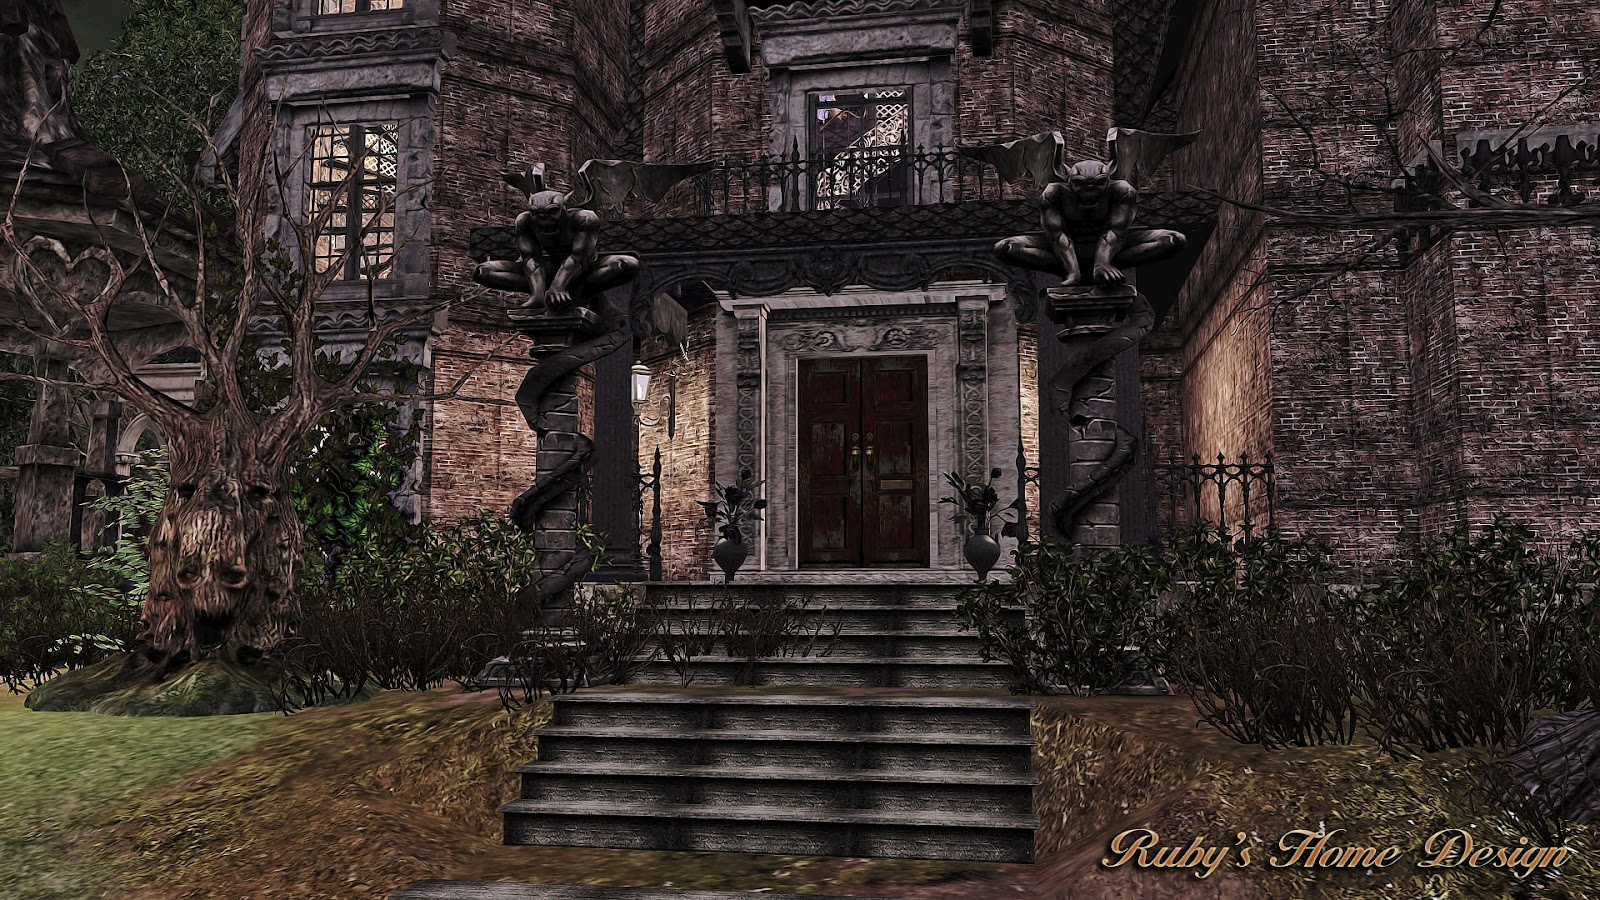 Sims3 The Gothic Mansion 哥德古宅 Ruby S Home Design